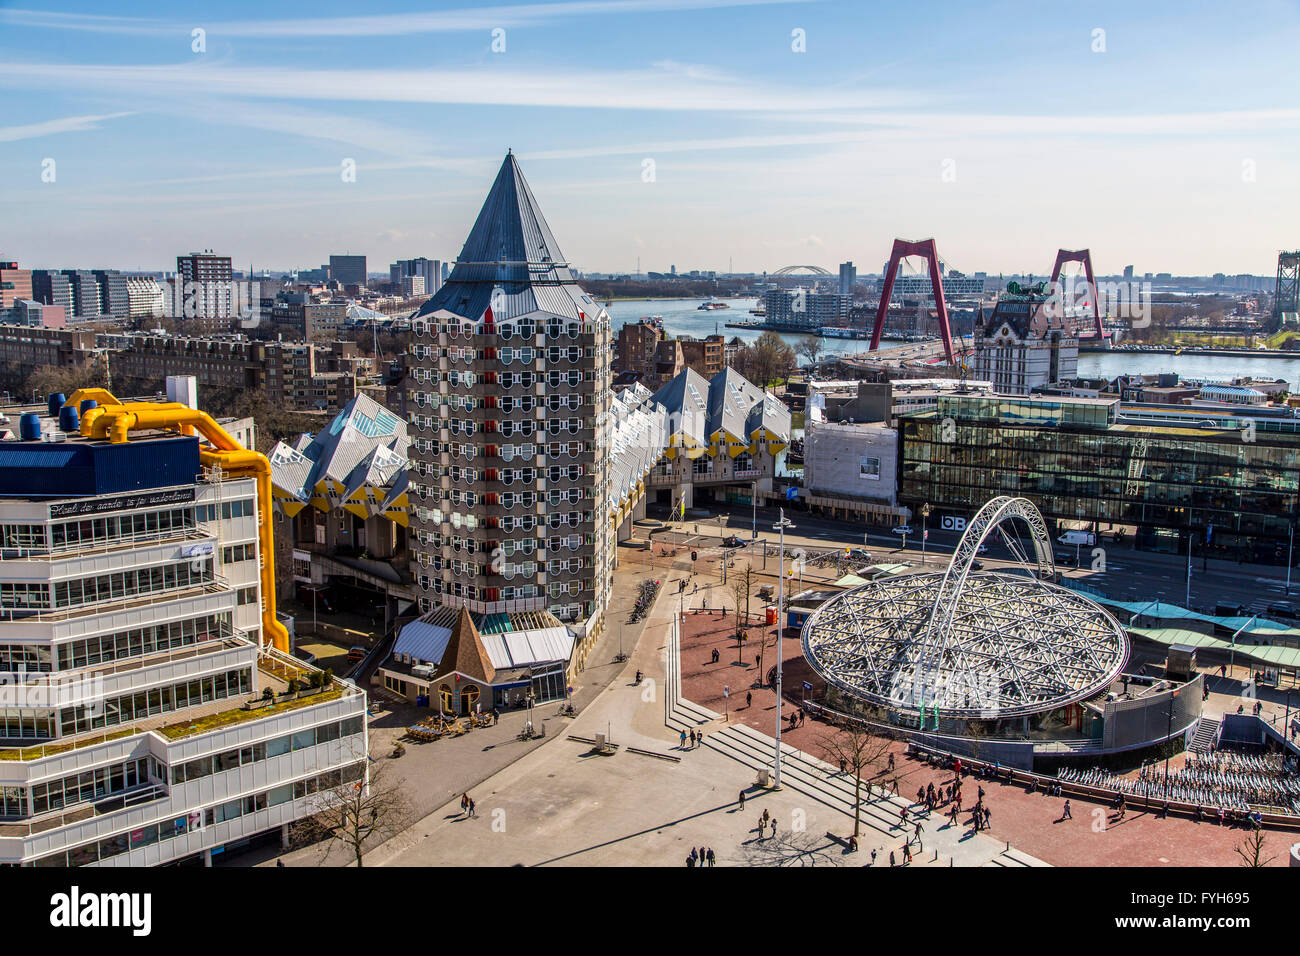 Downtown, skyline of Rotterdam, Blaak square cube residential buildings, and Kijk Kubus  houses in cube shape, Netherlands, Stock Photo